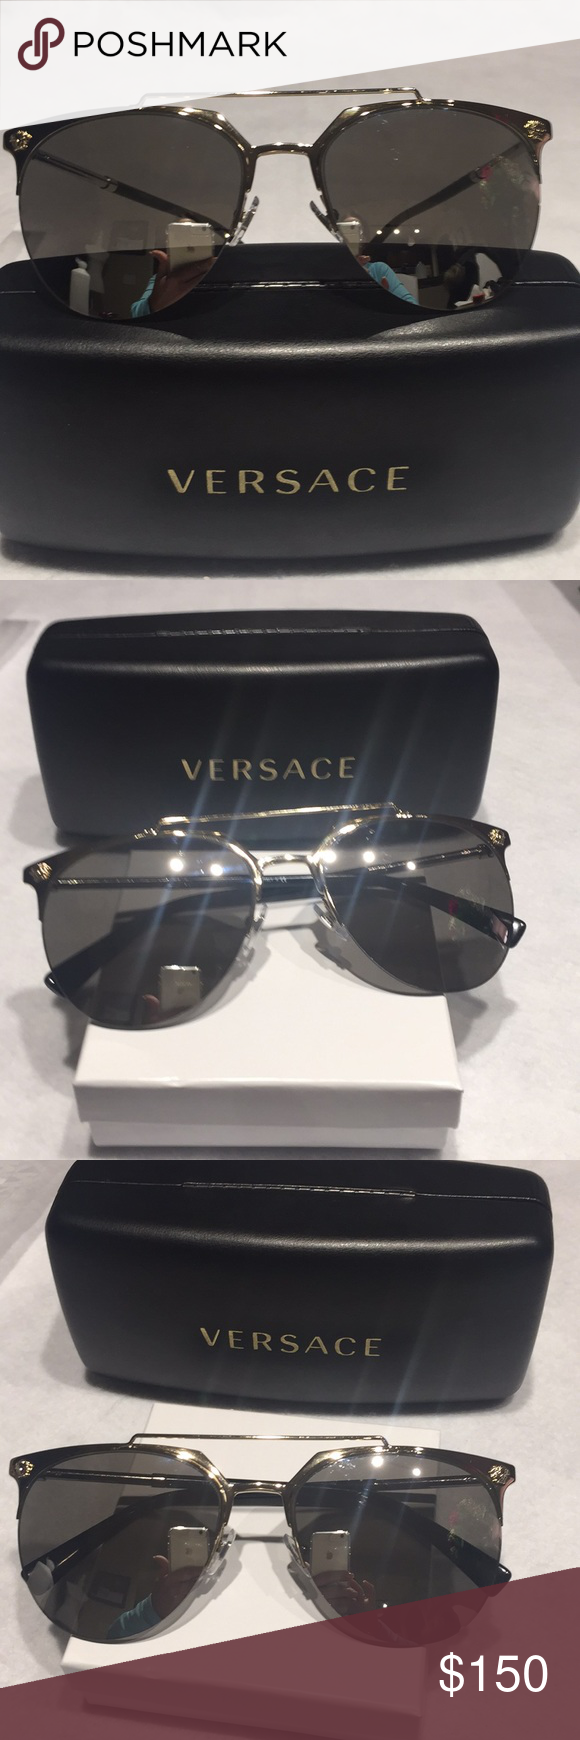 6b0ad023113f Spotted while shopping on Poshmark  NEW VERSACE AVIATOR GOLD SILVER  SUNGLASSES!  poshmark